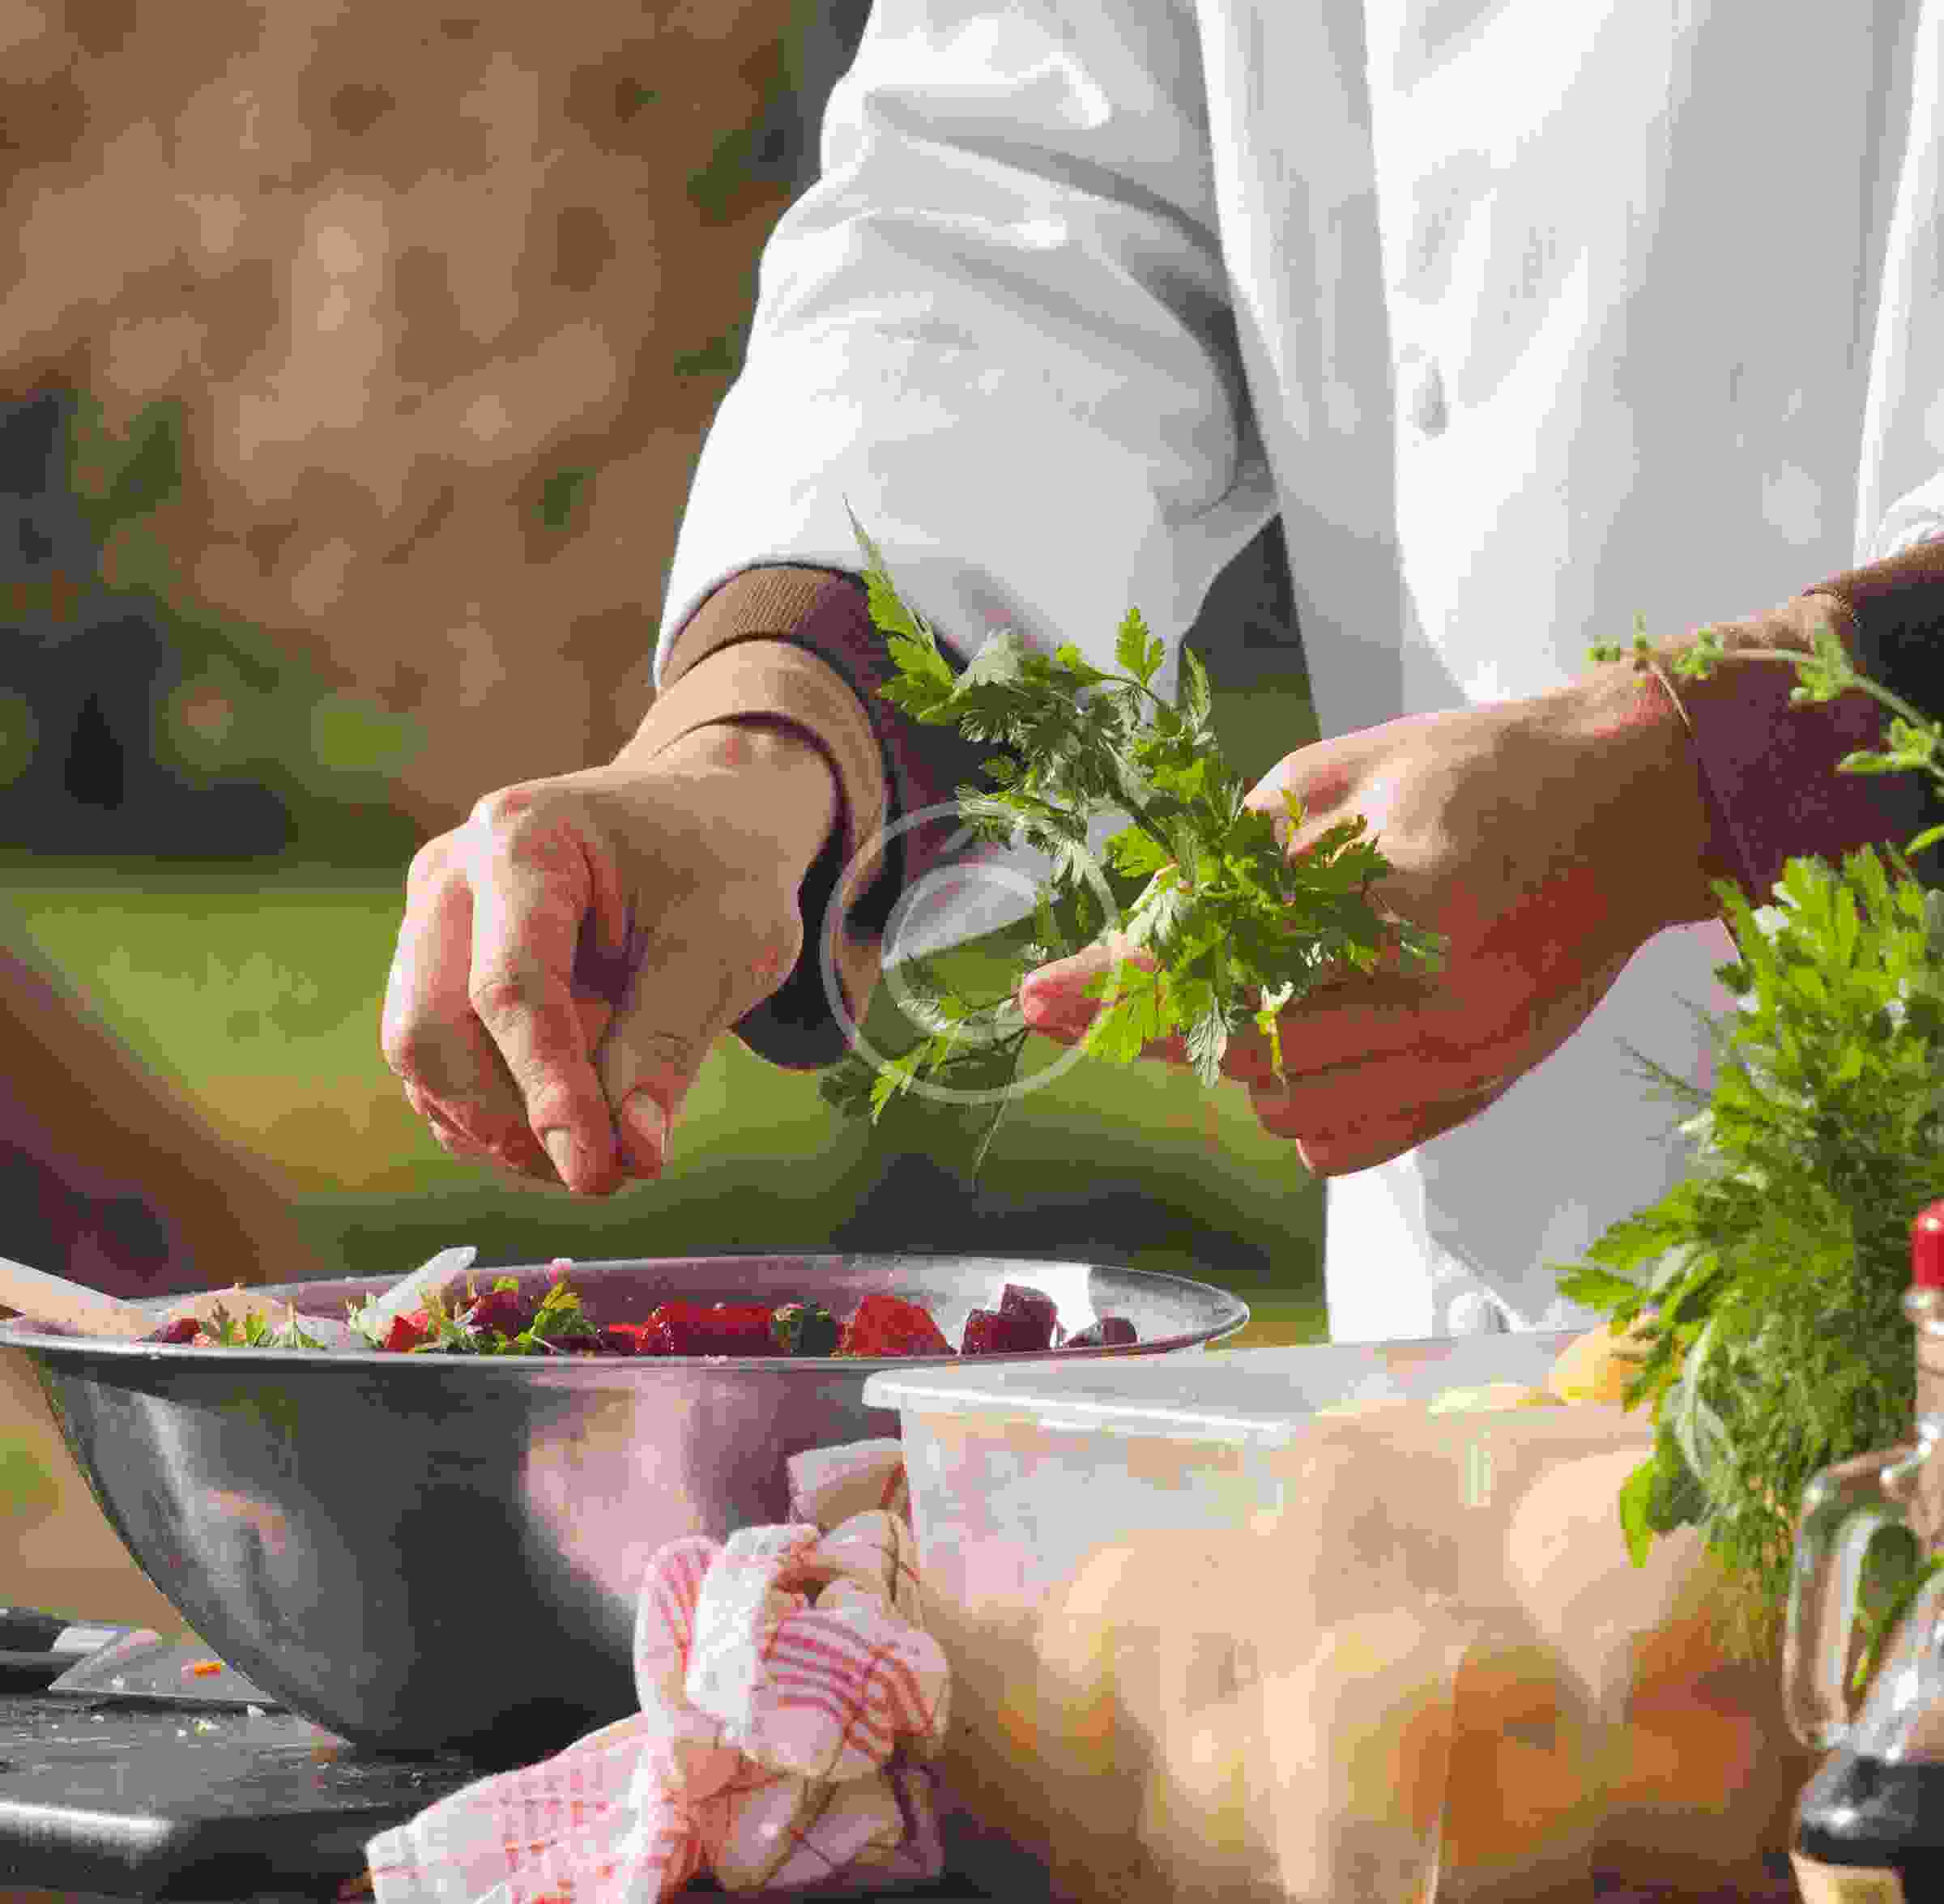 Chefs leave kitchens to cook for the fest